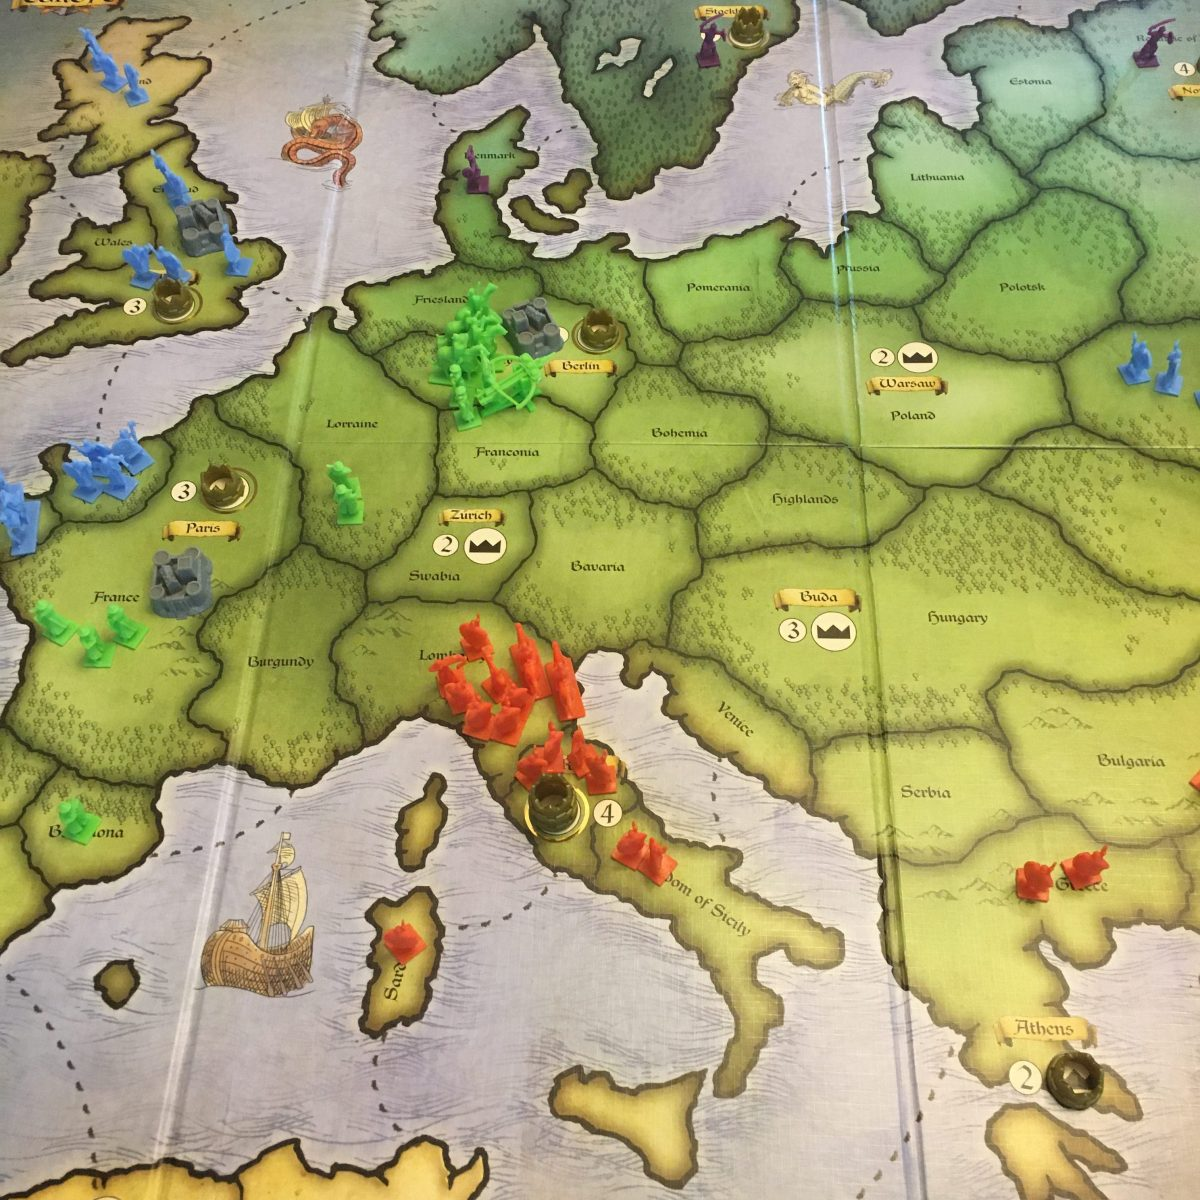 Turn 4 - Green overruns purple's territory